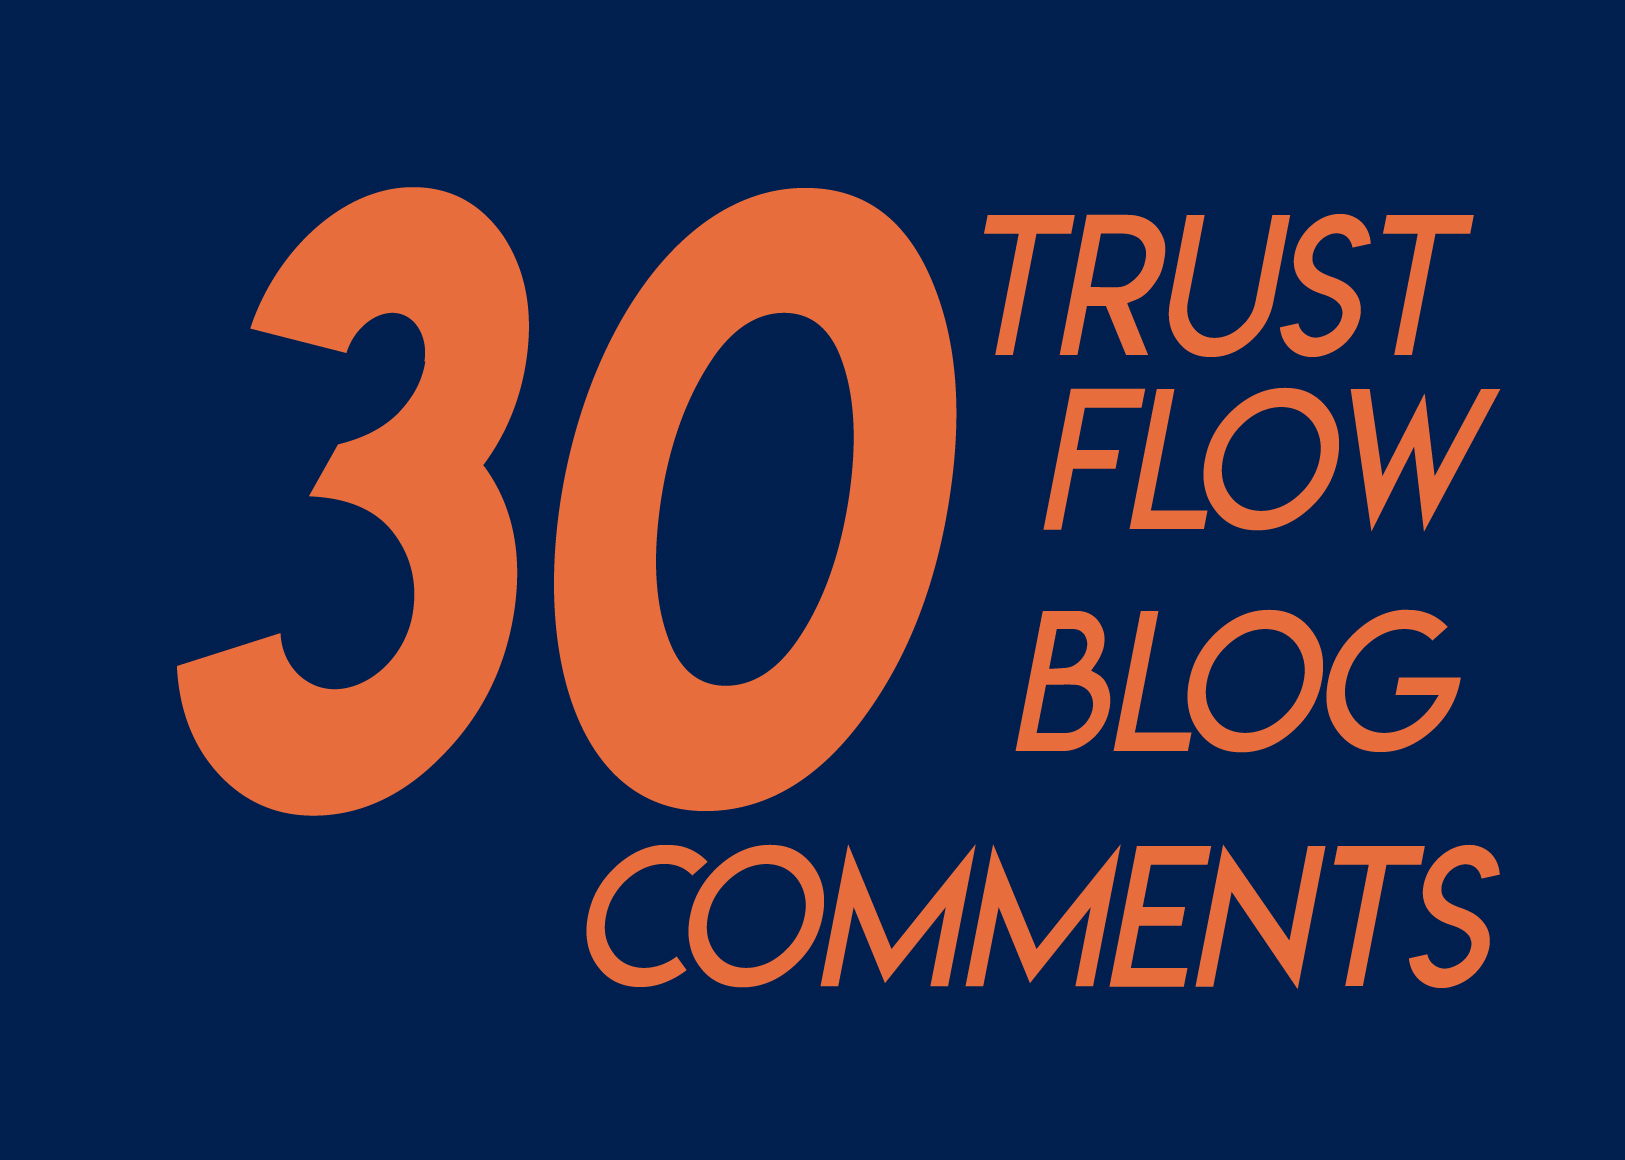 Do 30 Trust Flow Blog Comments Backlinks Dofollow